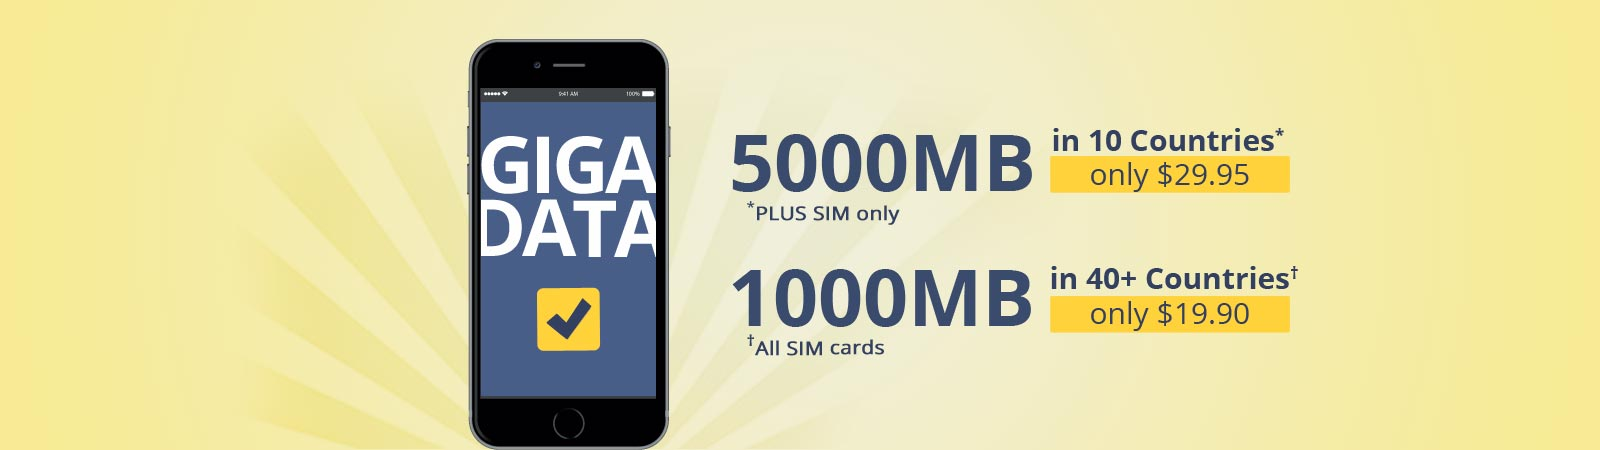 5000MB data package on OneSimCard Plus International SIM Card